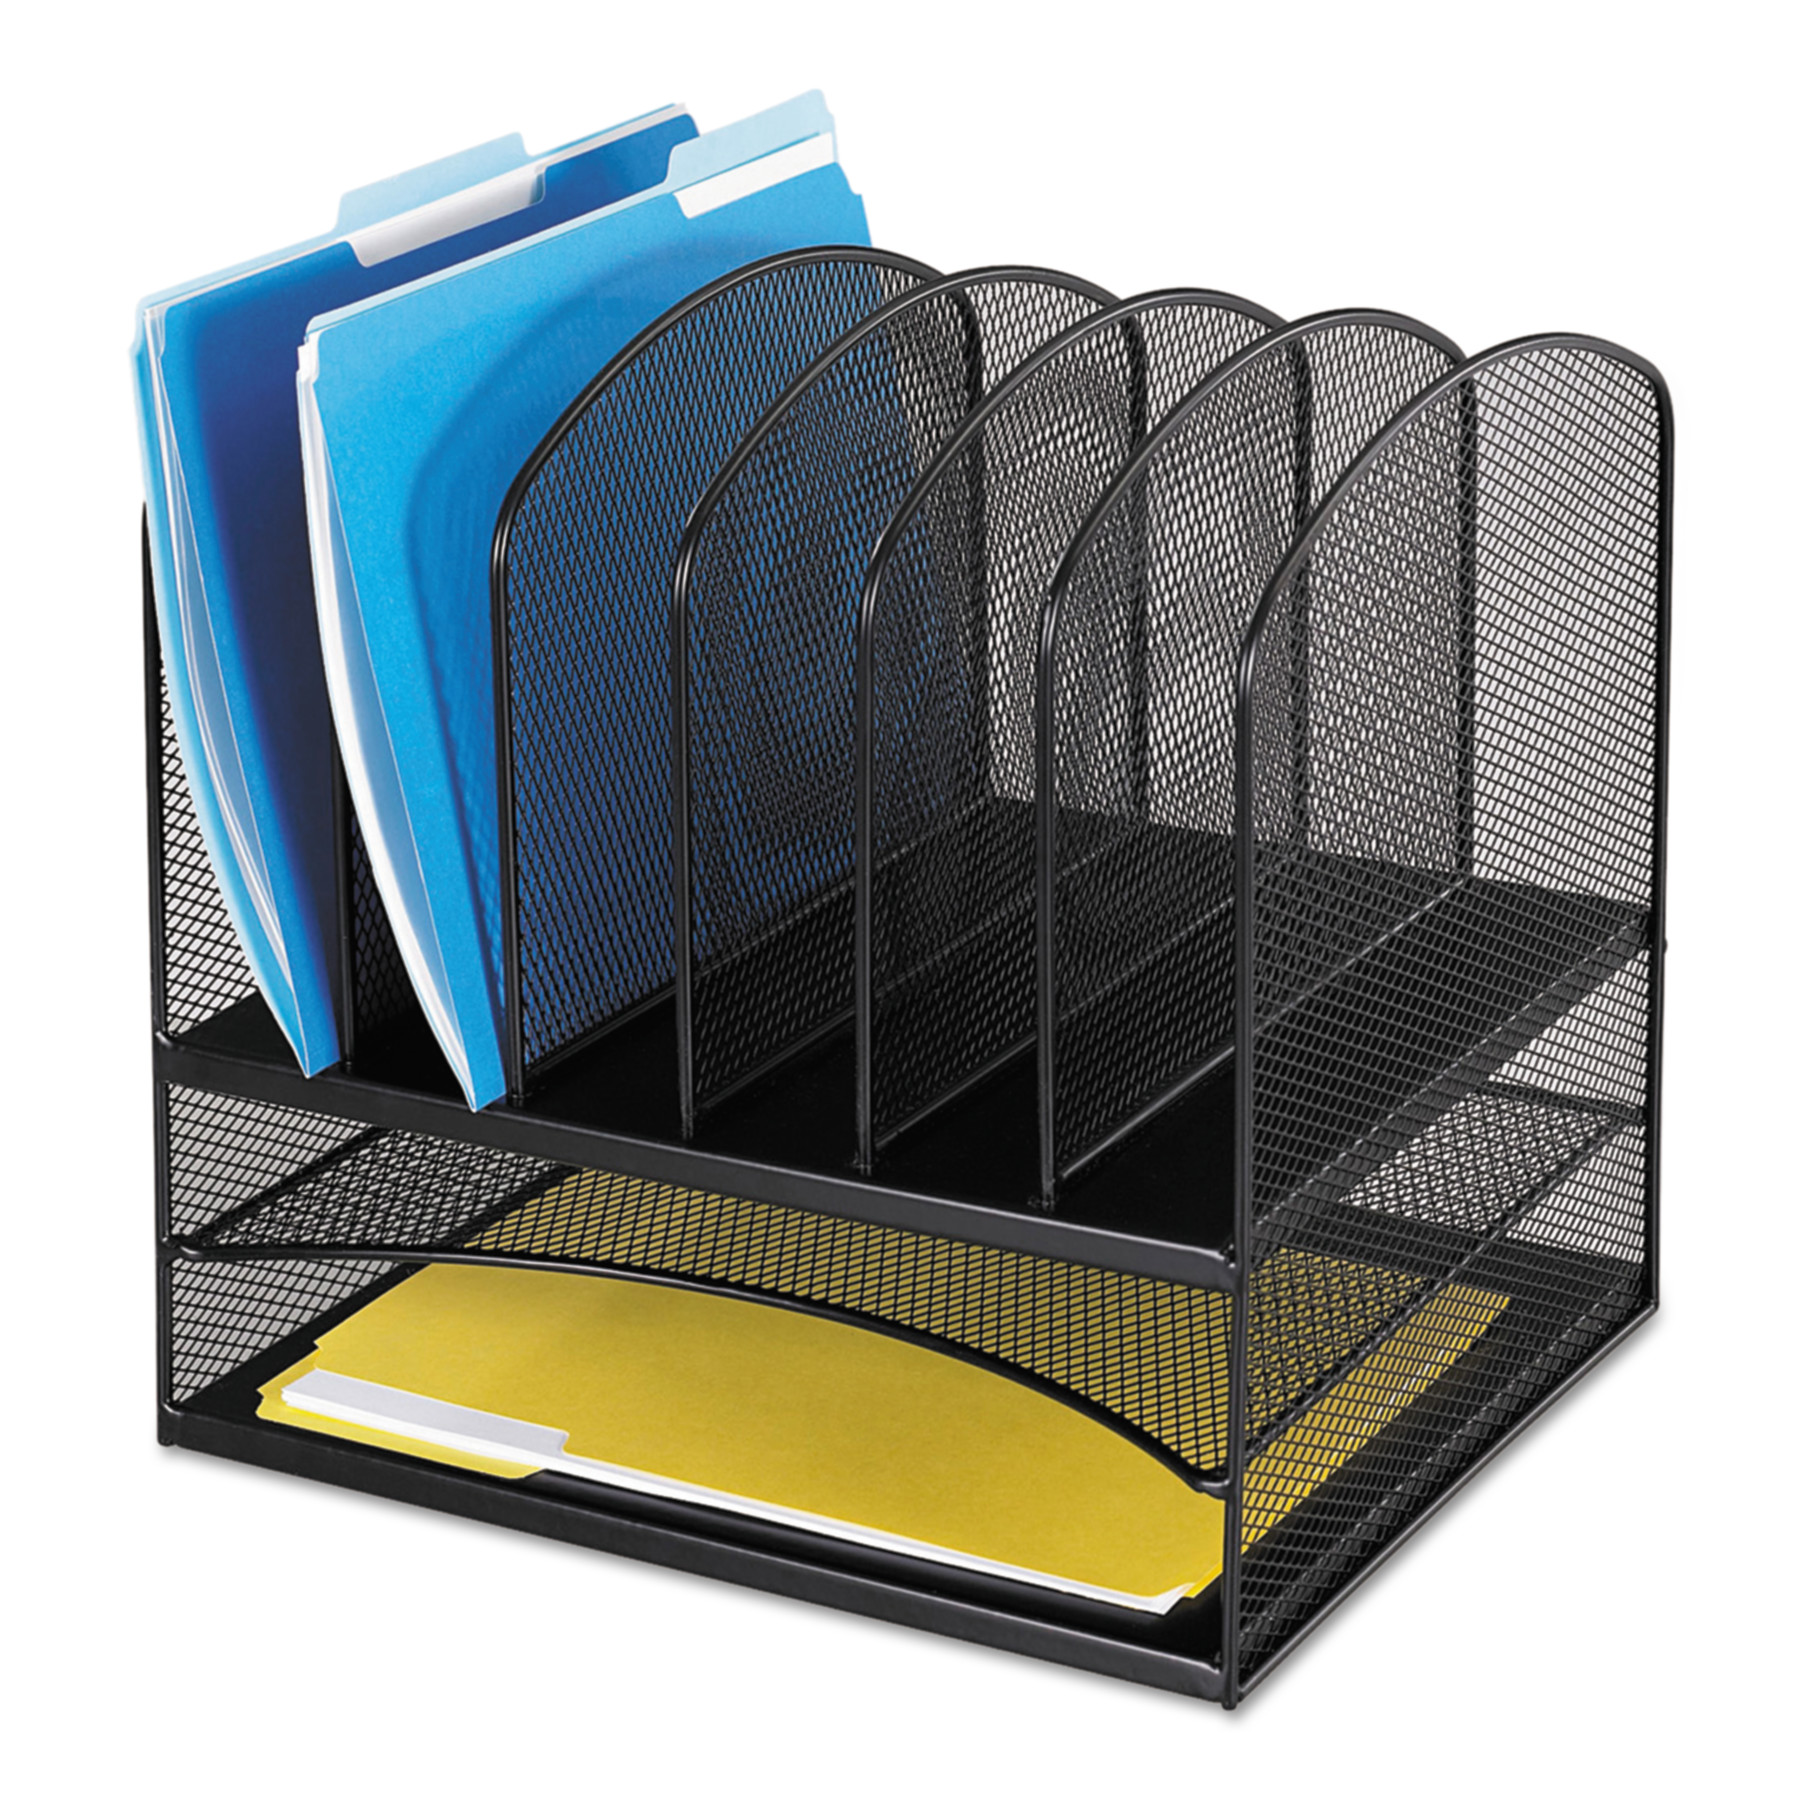 Safco Mesh Desk Organizer, Eight Sections, Steel, 13 1/2 x 11 3/8 x 13, Black -SAF3255BL